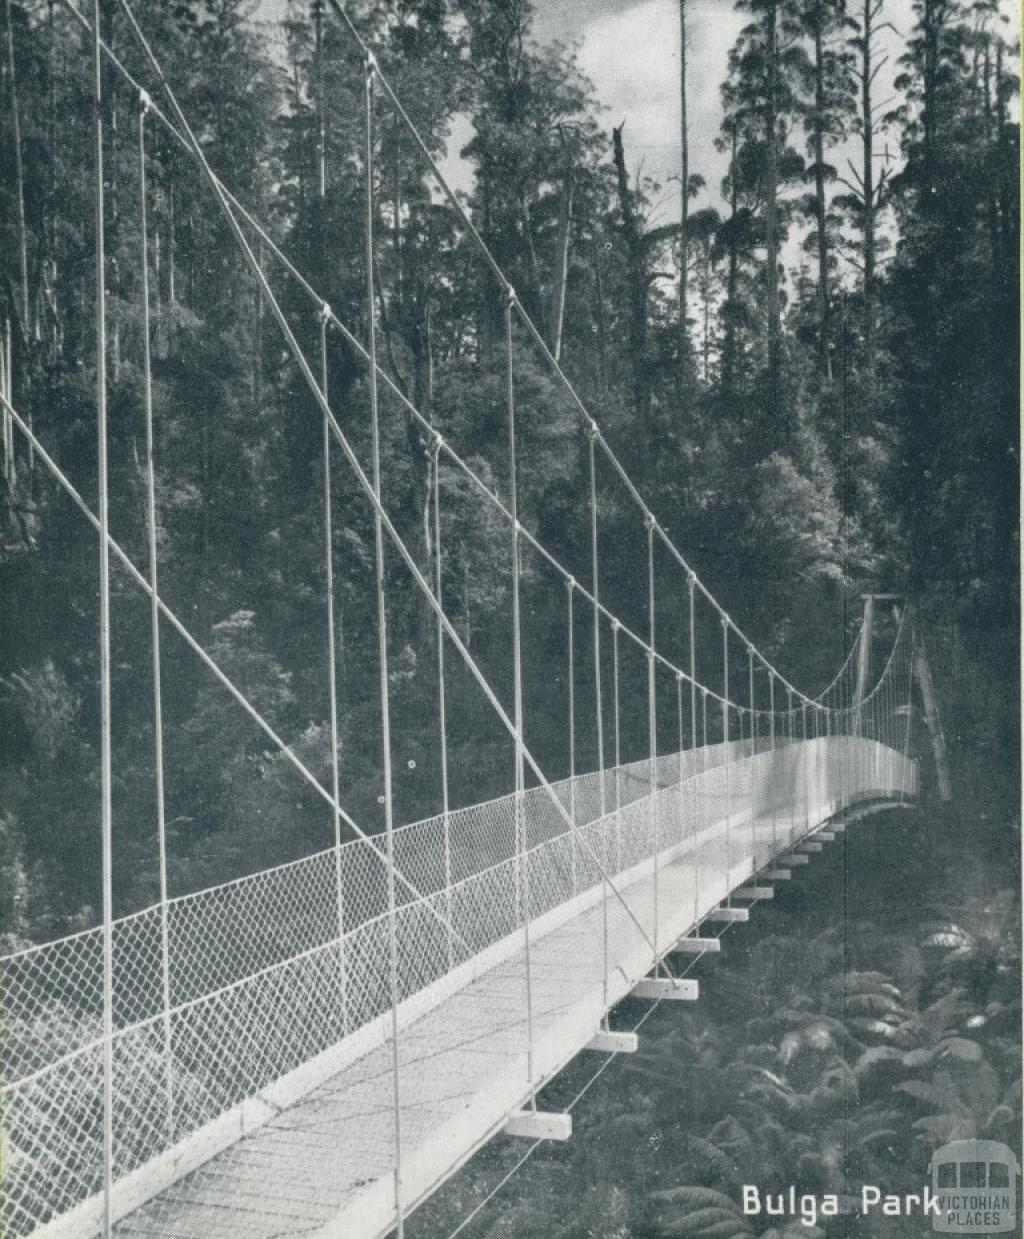 Suspension Bridge, Bulga Park, Yarram, 1947